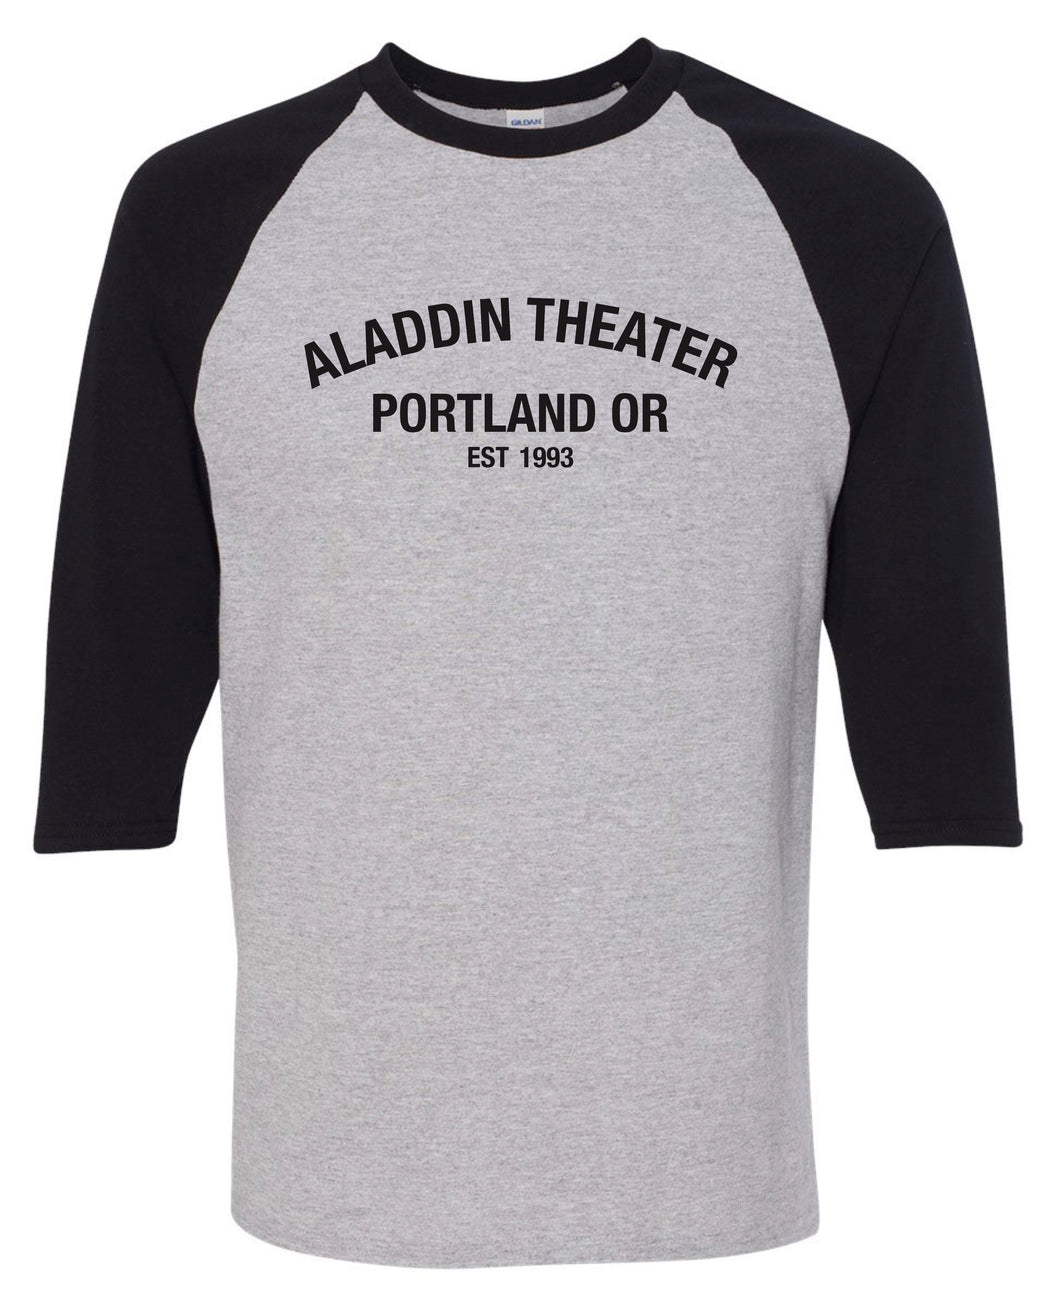 Aladdin Theater 3/4 Sleeve Baseball Tee - Grey